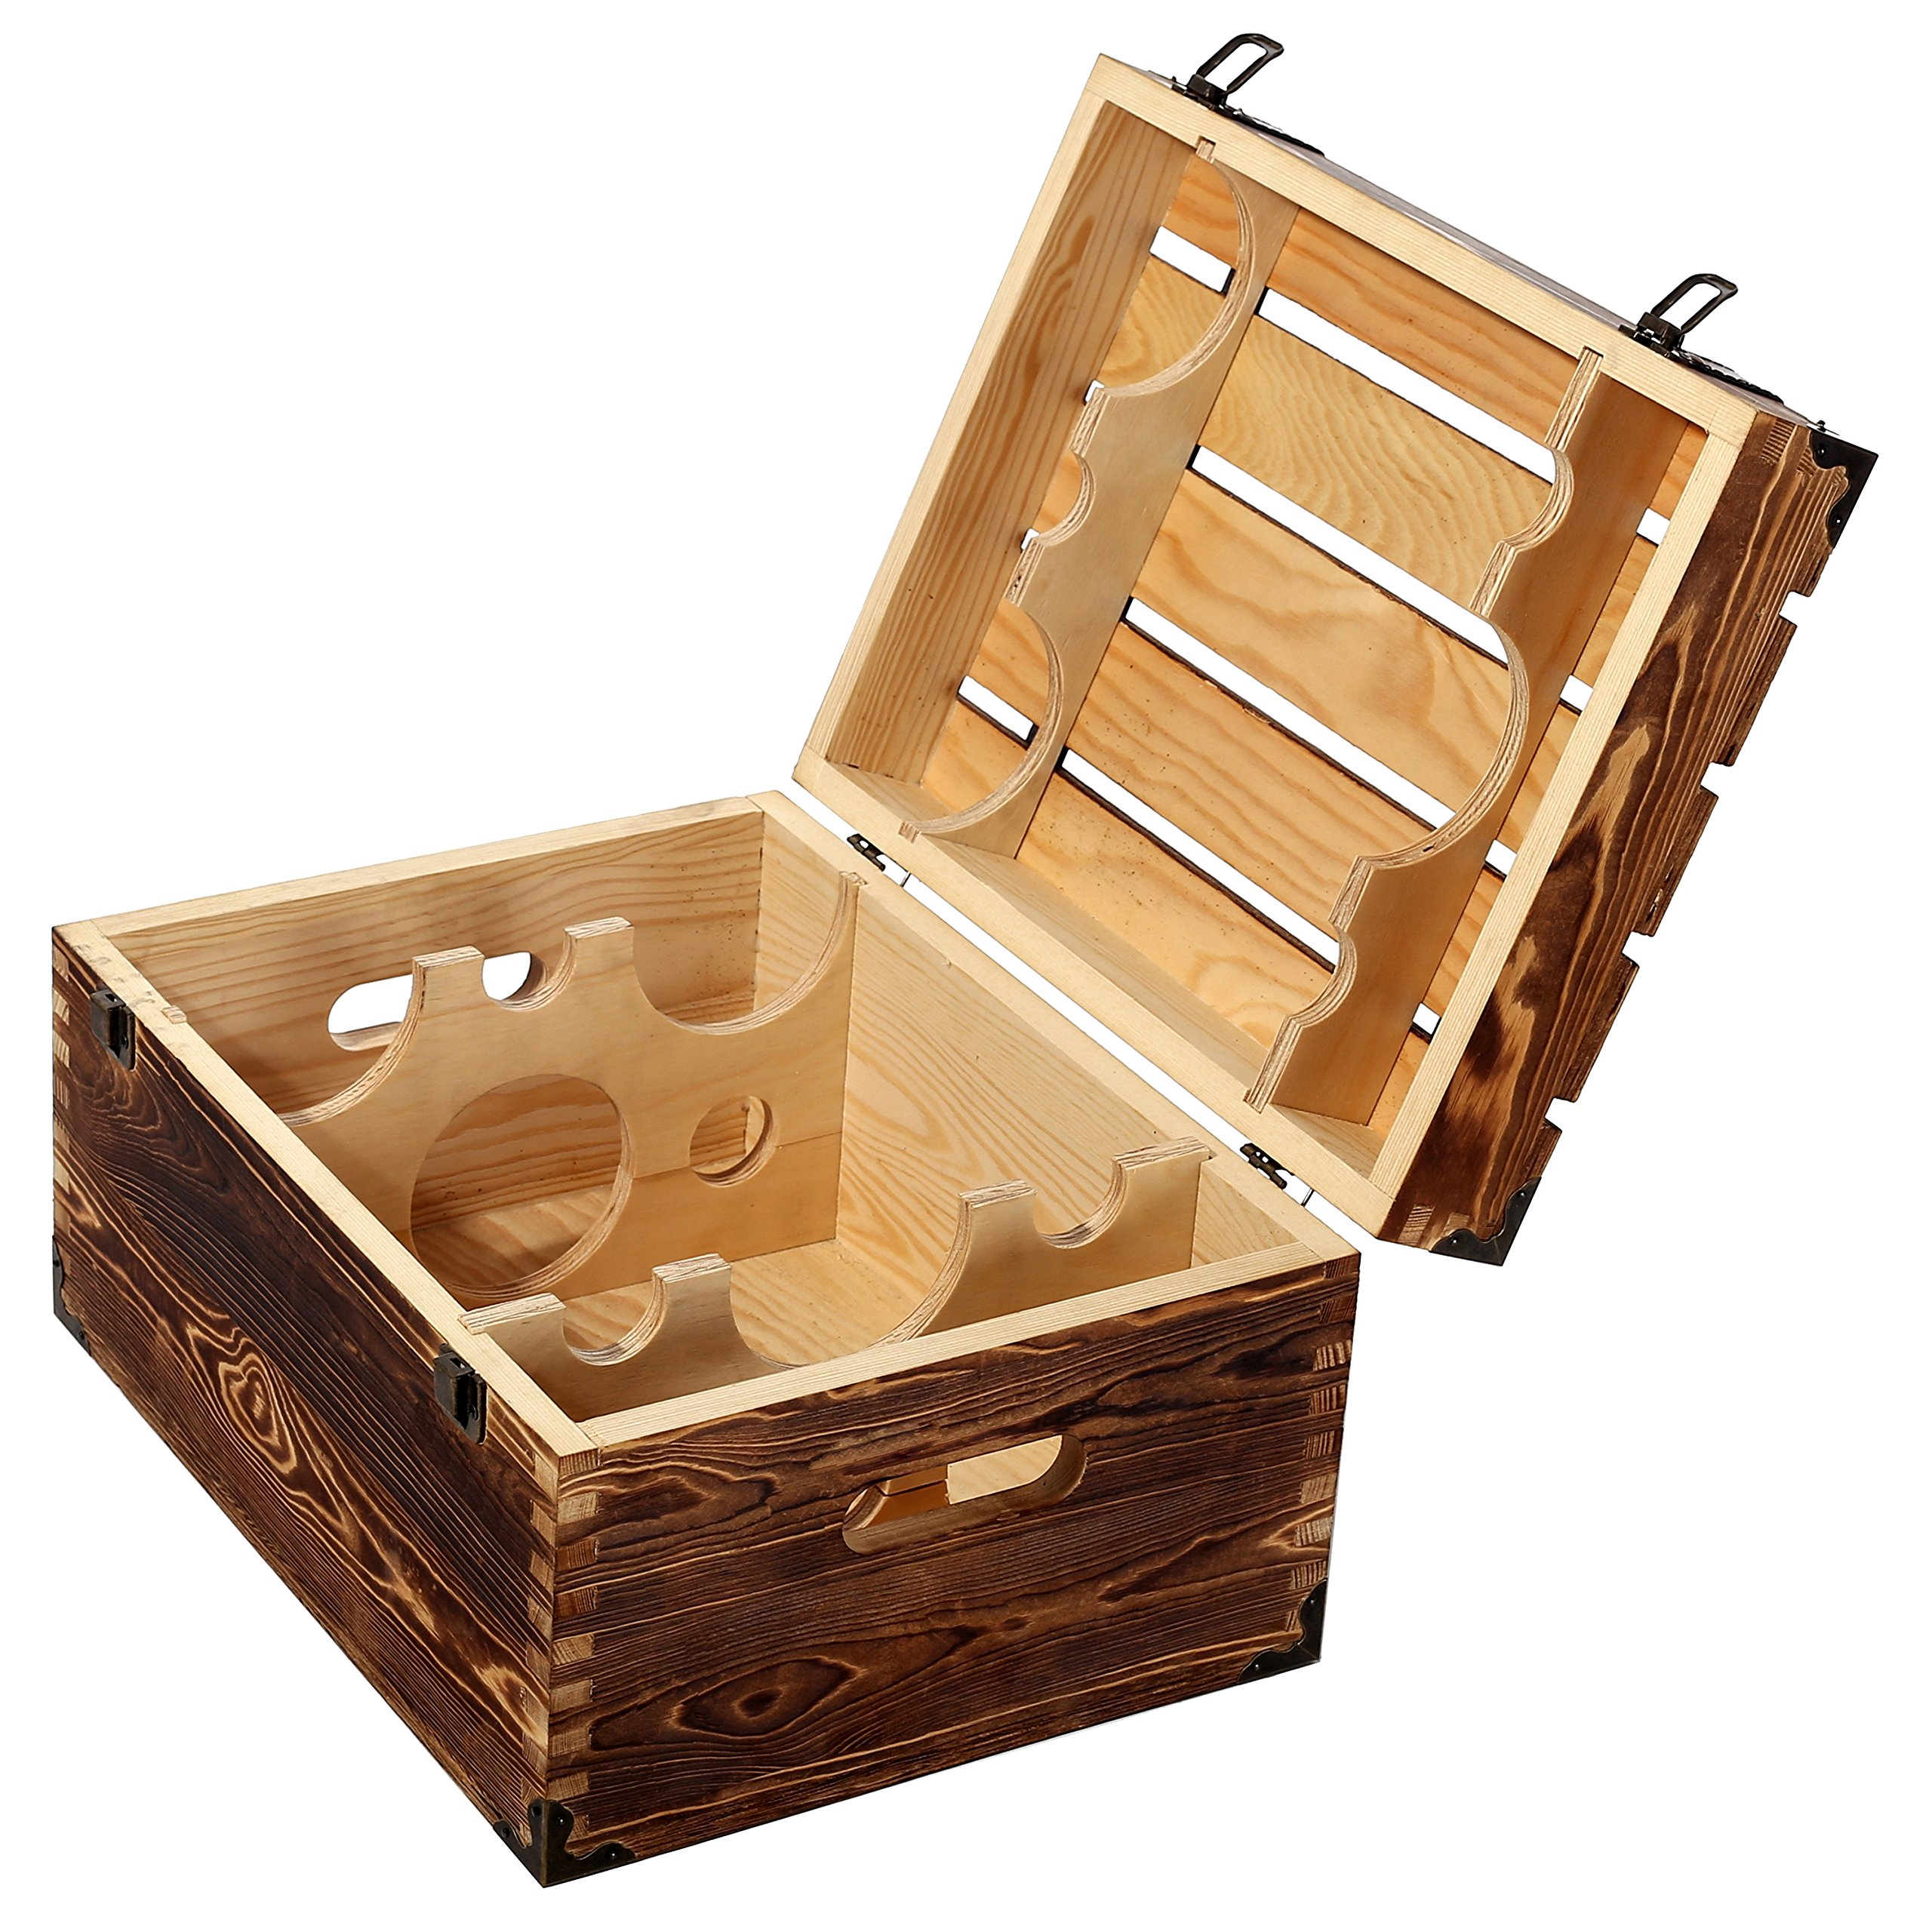 MyGift Wood 6 Wine Bottle Case, Rustic Storage Box with Handles and Lid, Brown by MyGift (Image #4)